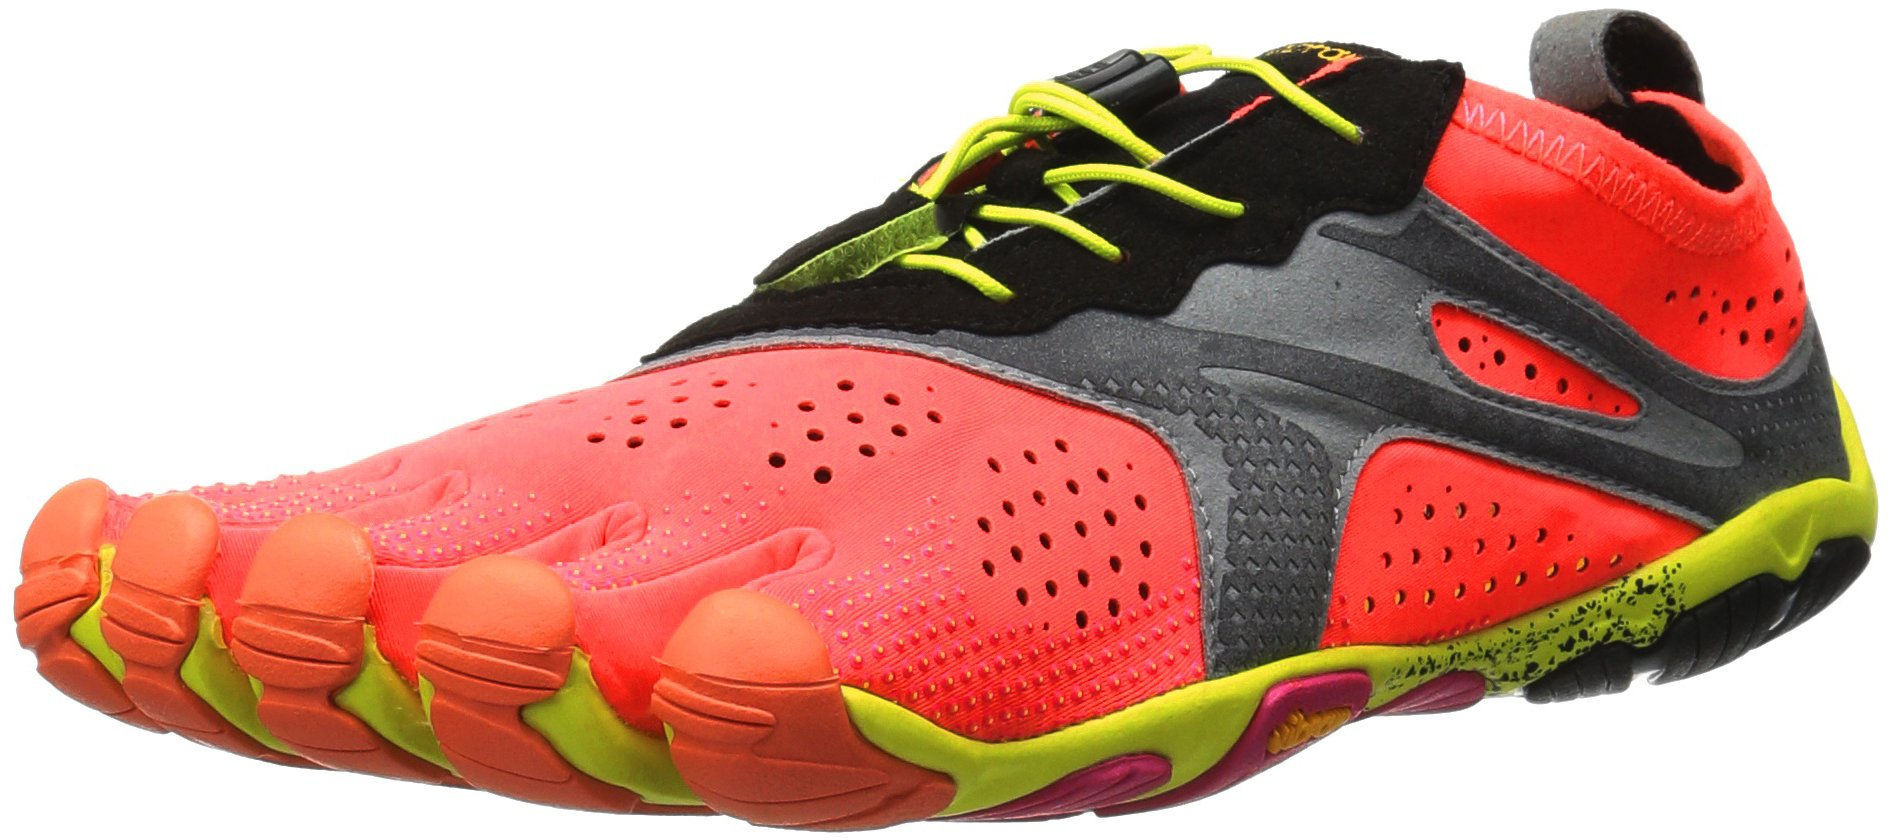 Vibram Women's V Running Shoe,Fiery Coral,39 EU/8-8.5 US